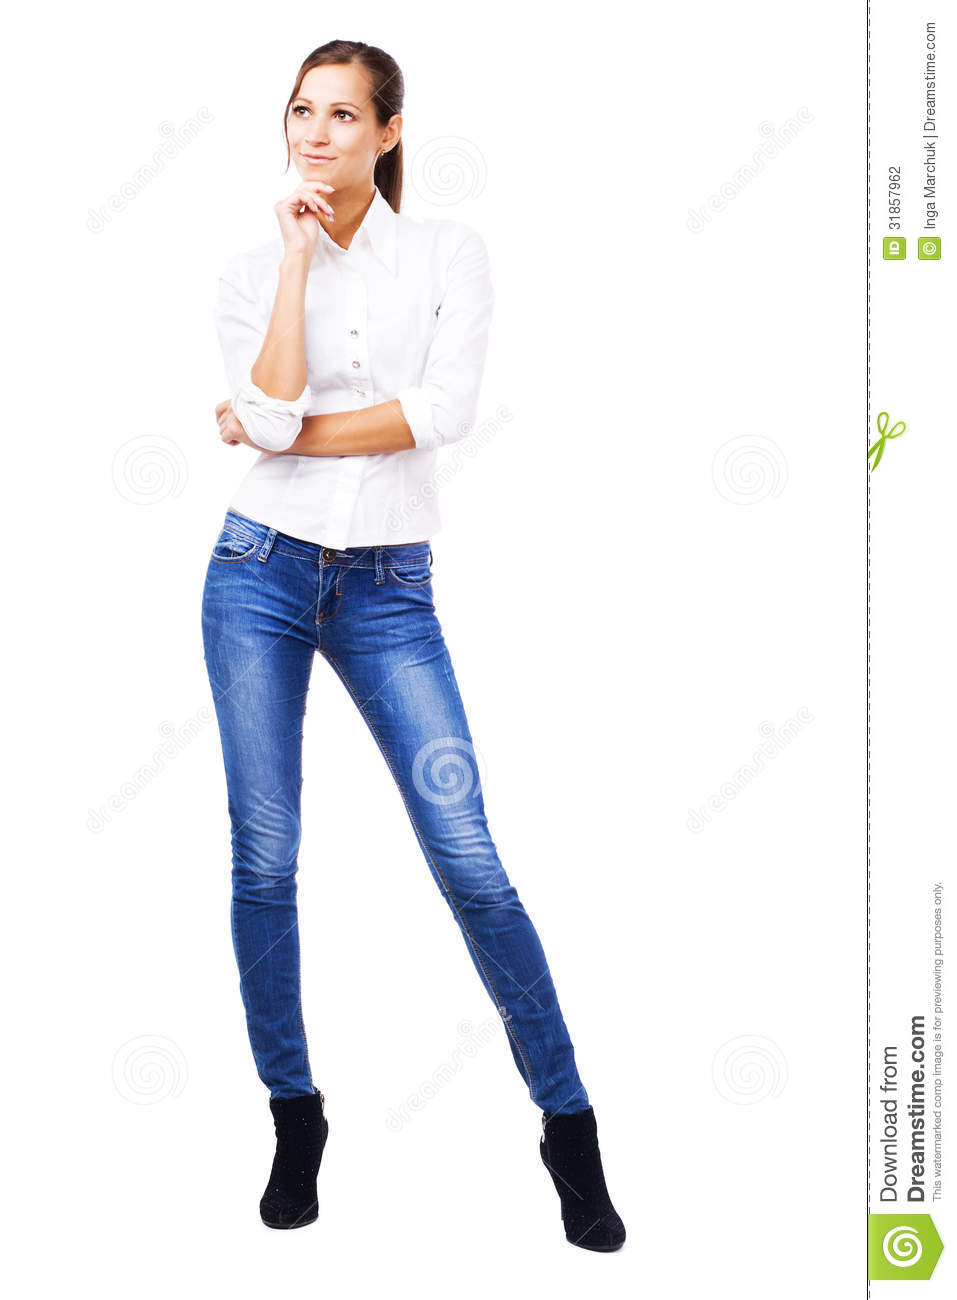 lovely woman in white shirt and blue jeans stock